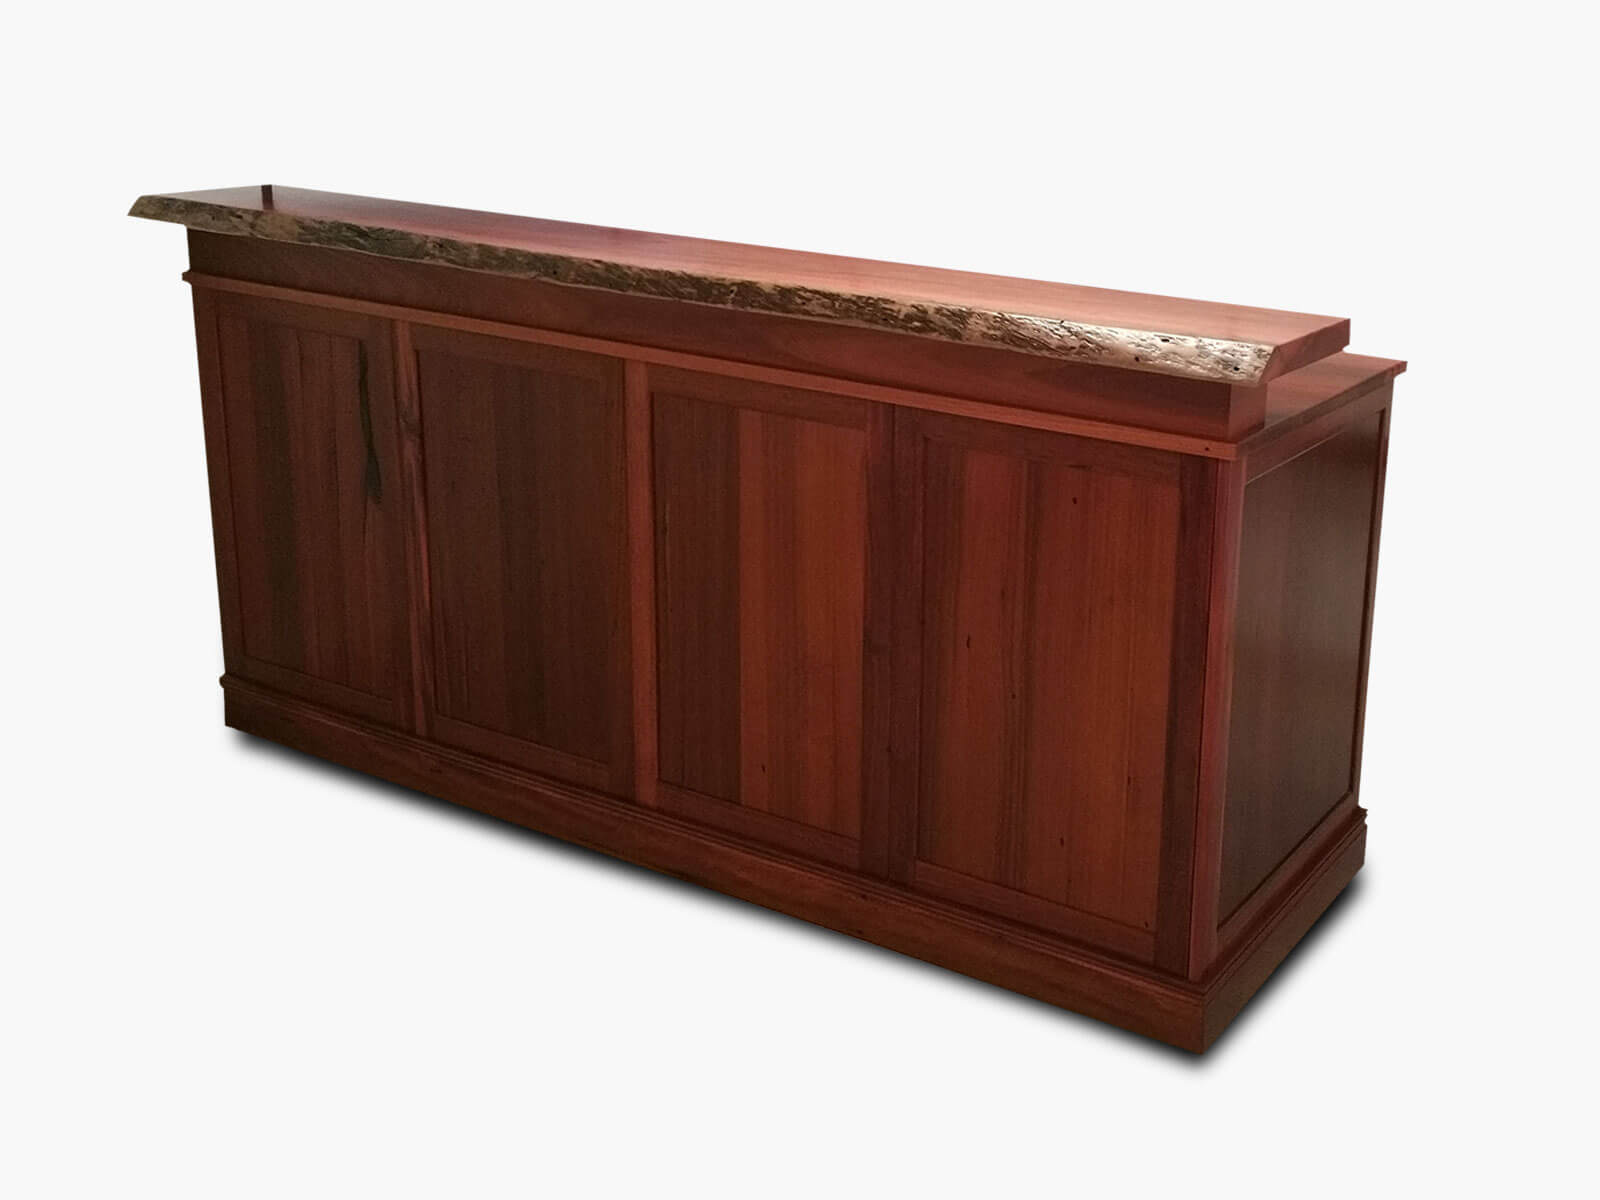 Mudjimba-Bar Timber Furniture